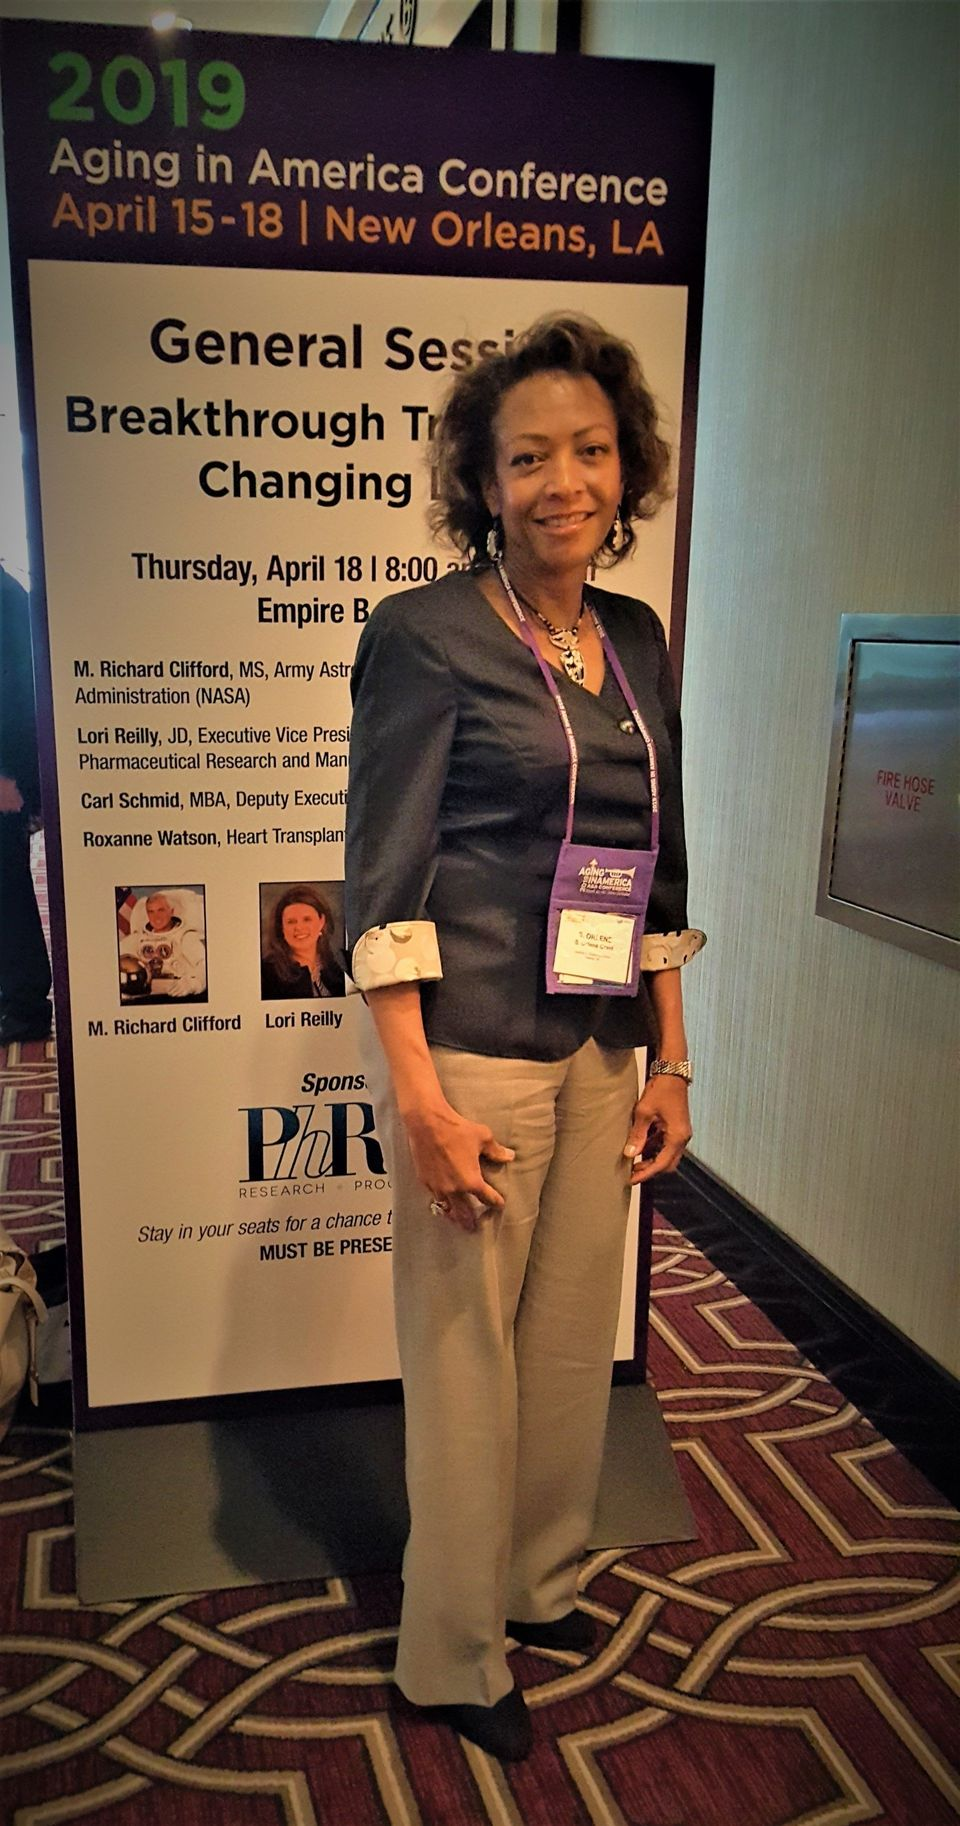 2019 Annual Conference of the American Society on Aging